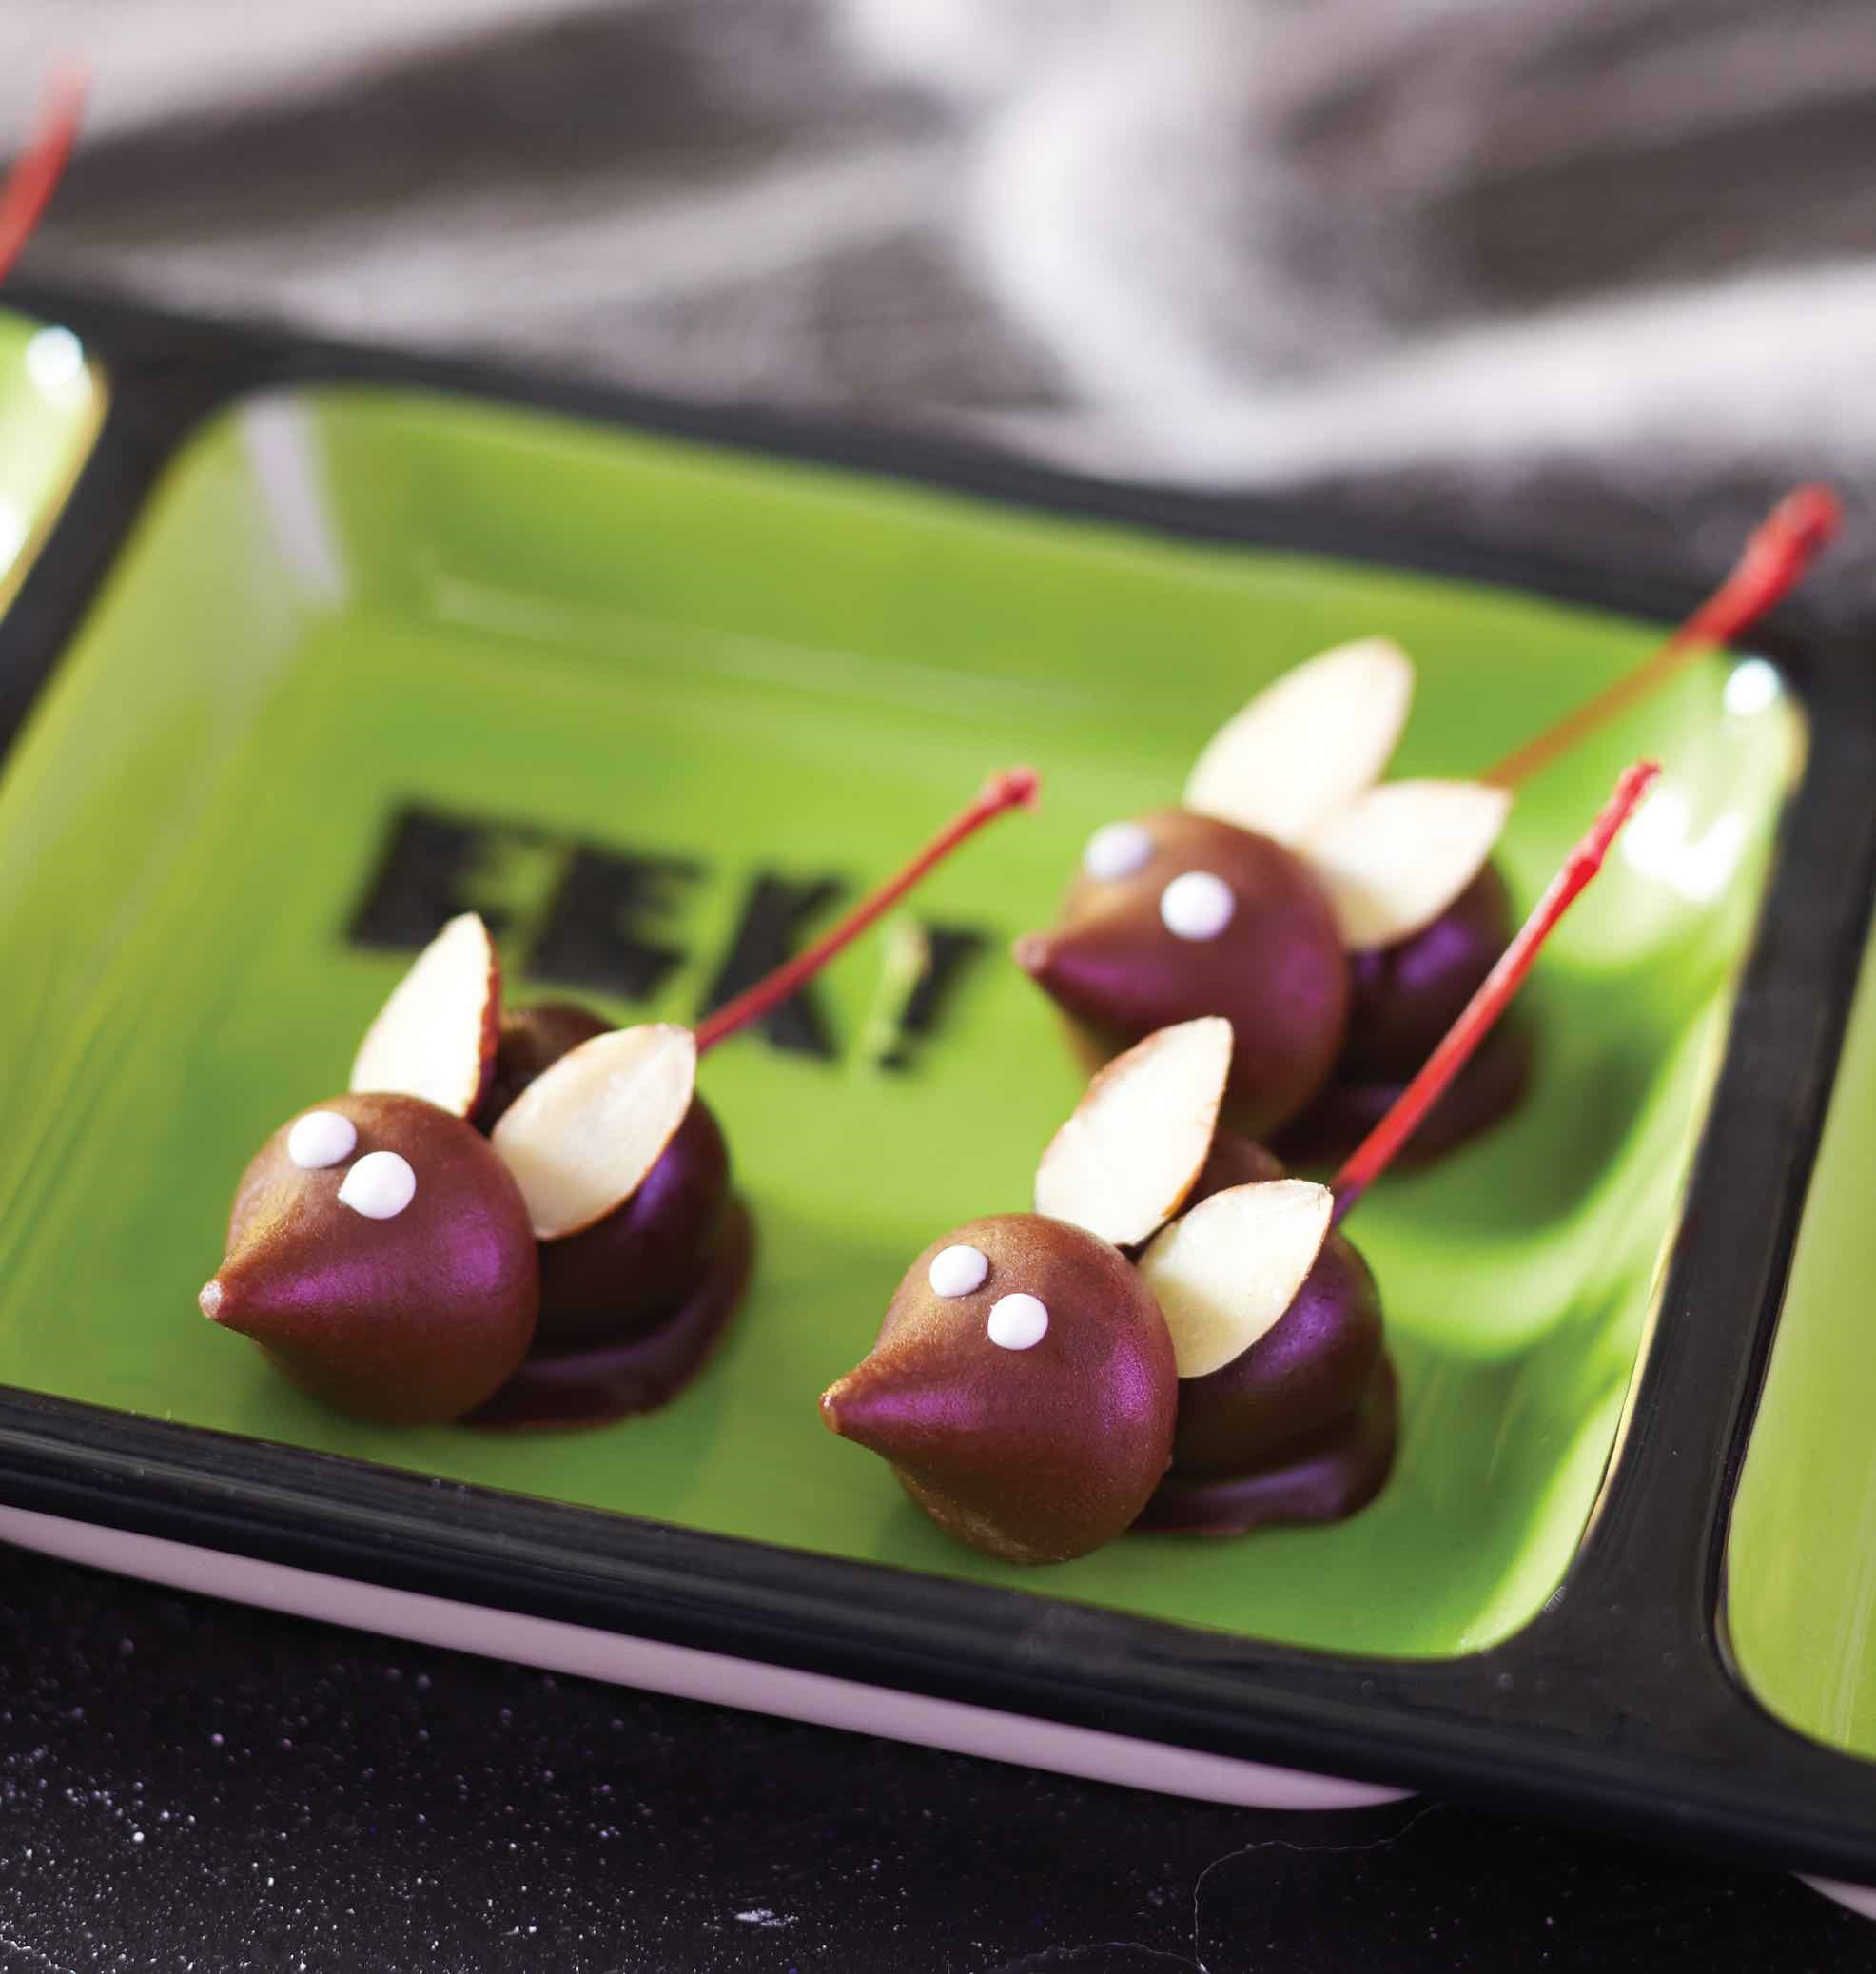 Chocolate Covered Cherries Bodies, Hershey Kiss Faces and Two Almond Slices Make Creepy Mice